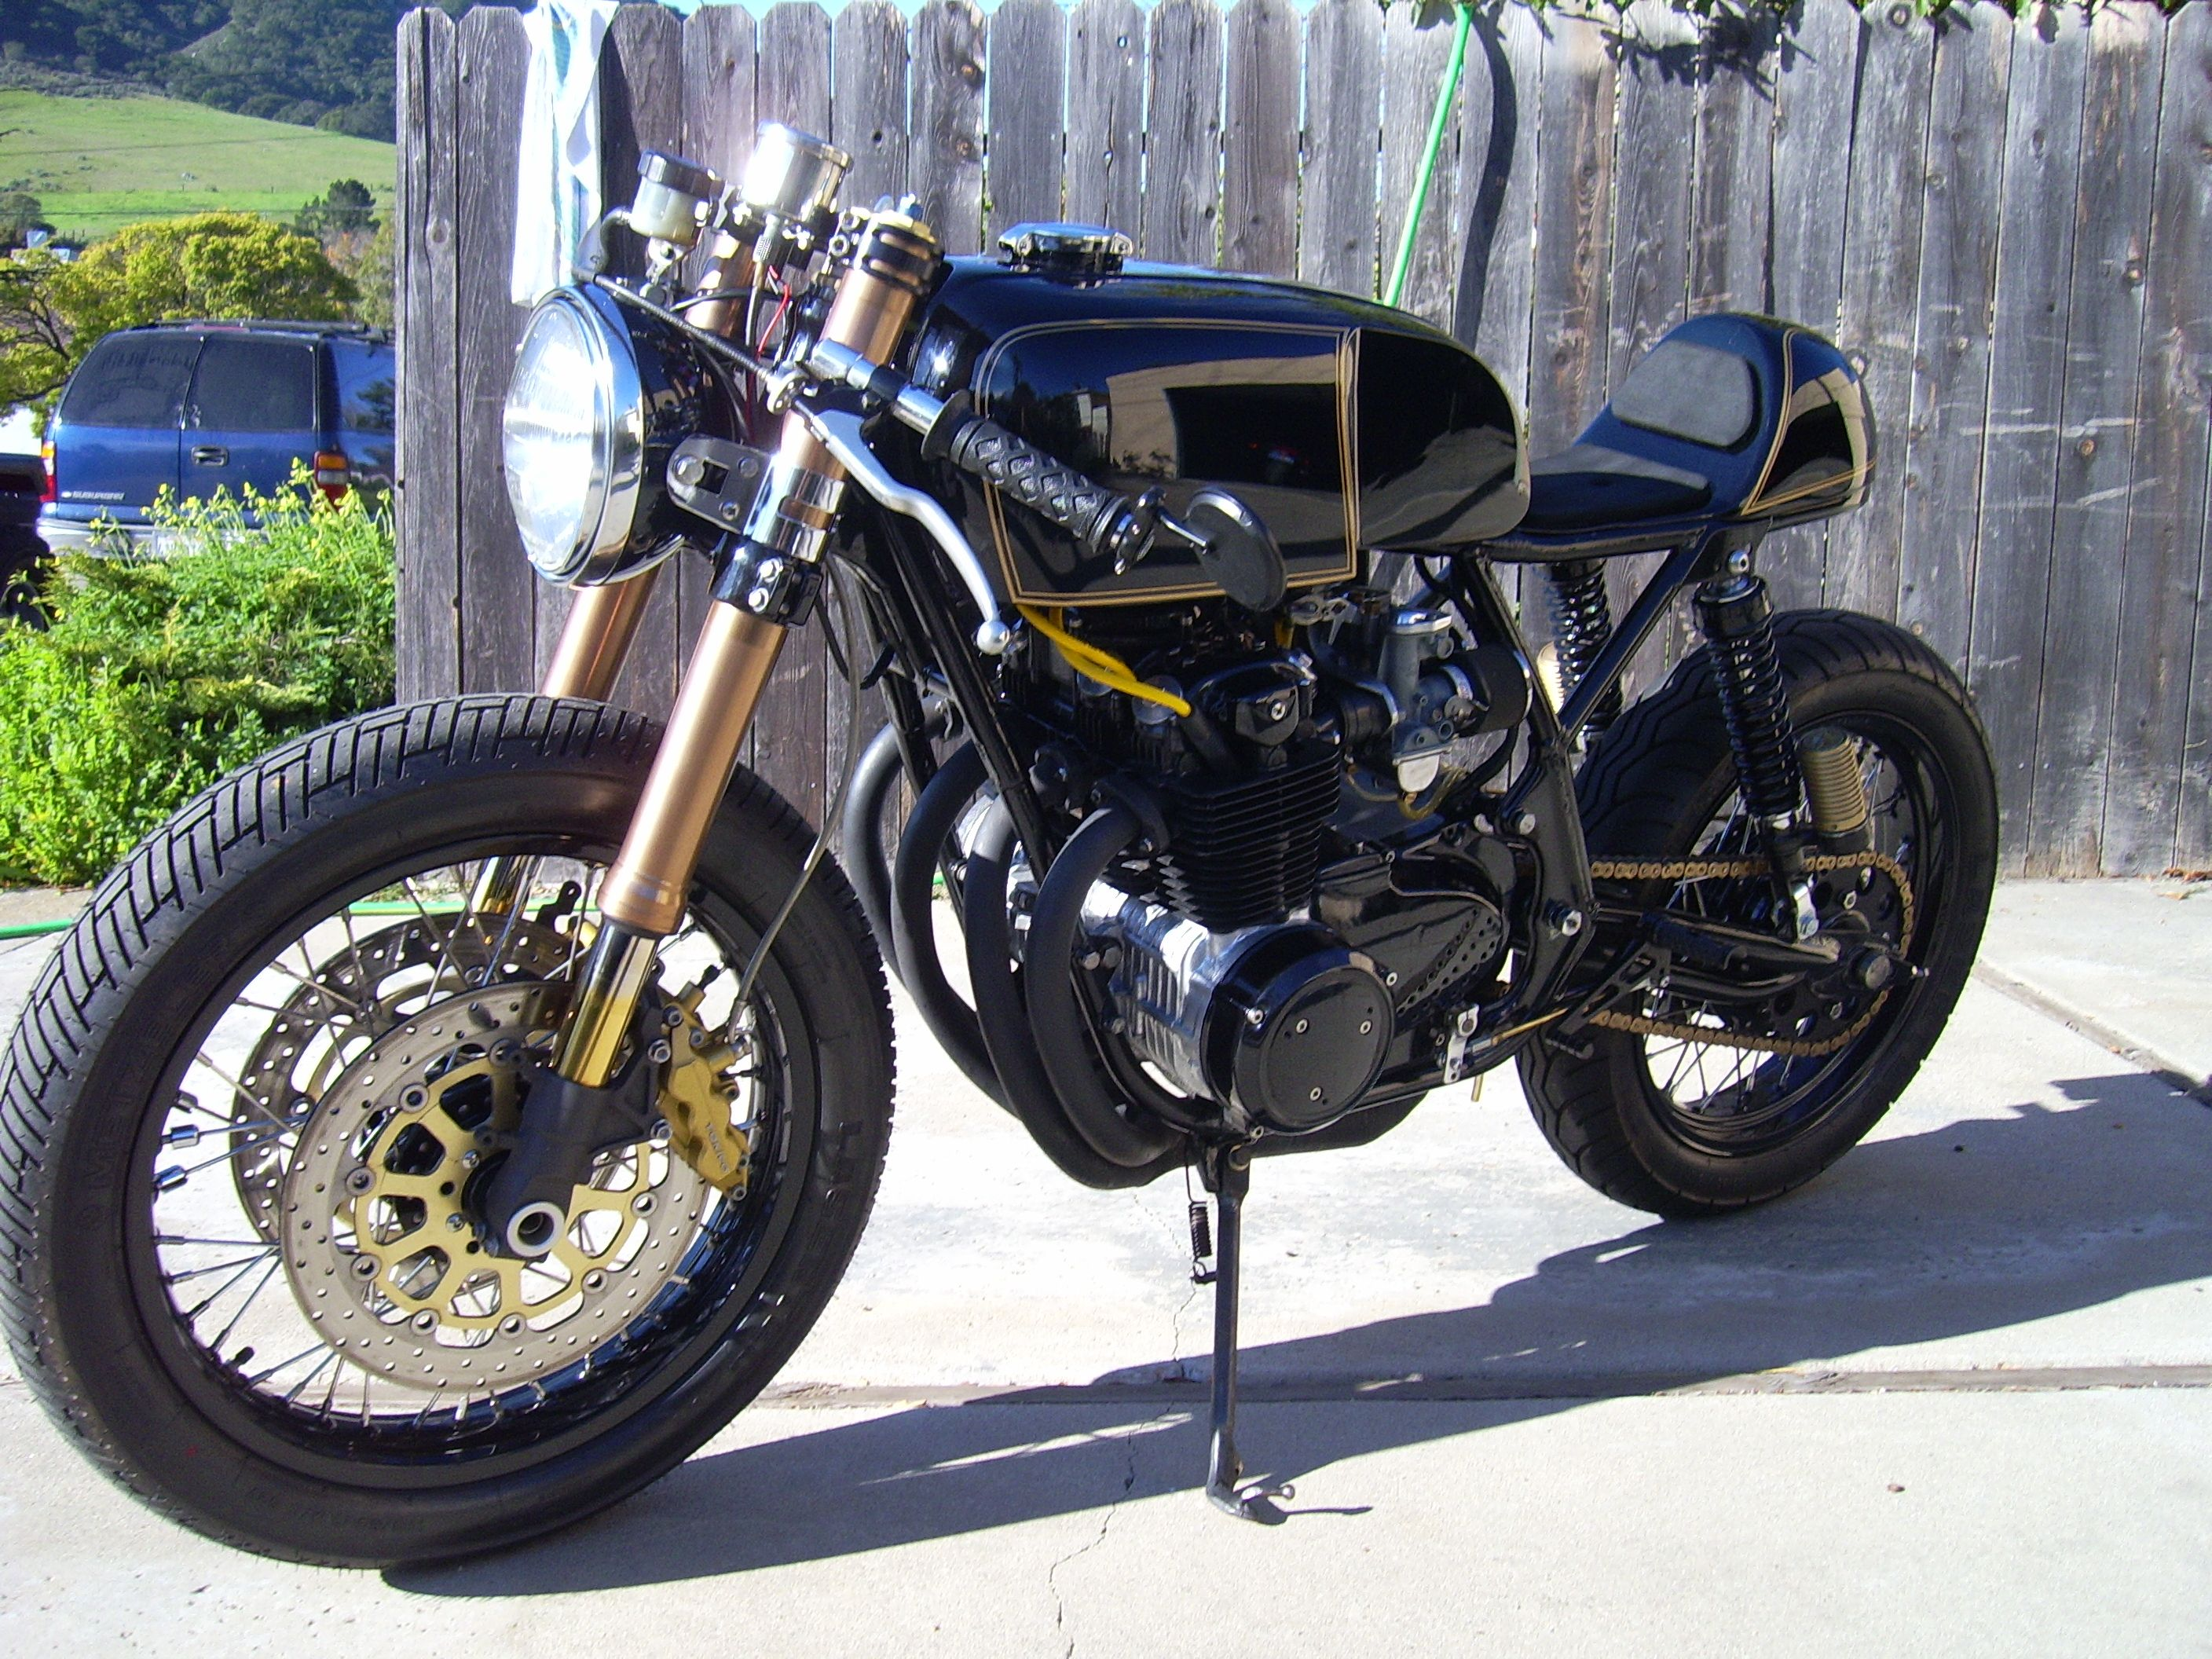 I Want Another Cafe Racer So Sweet